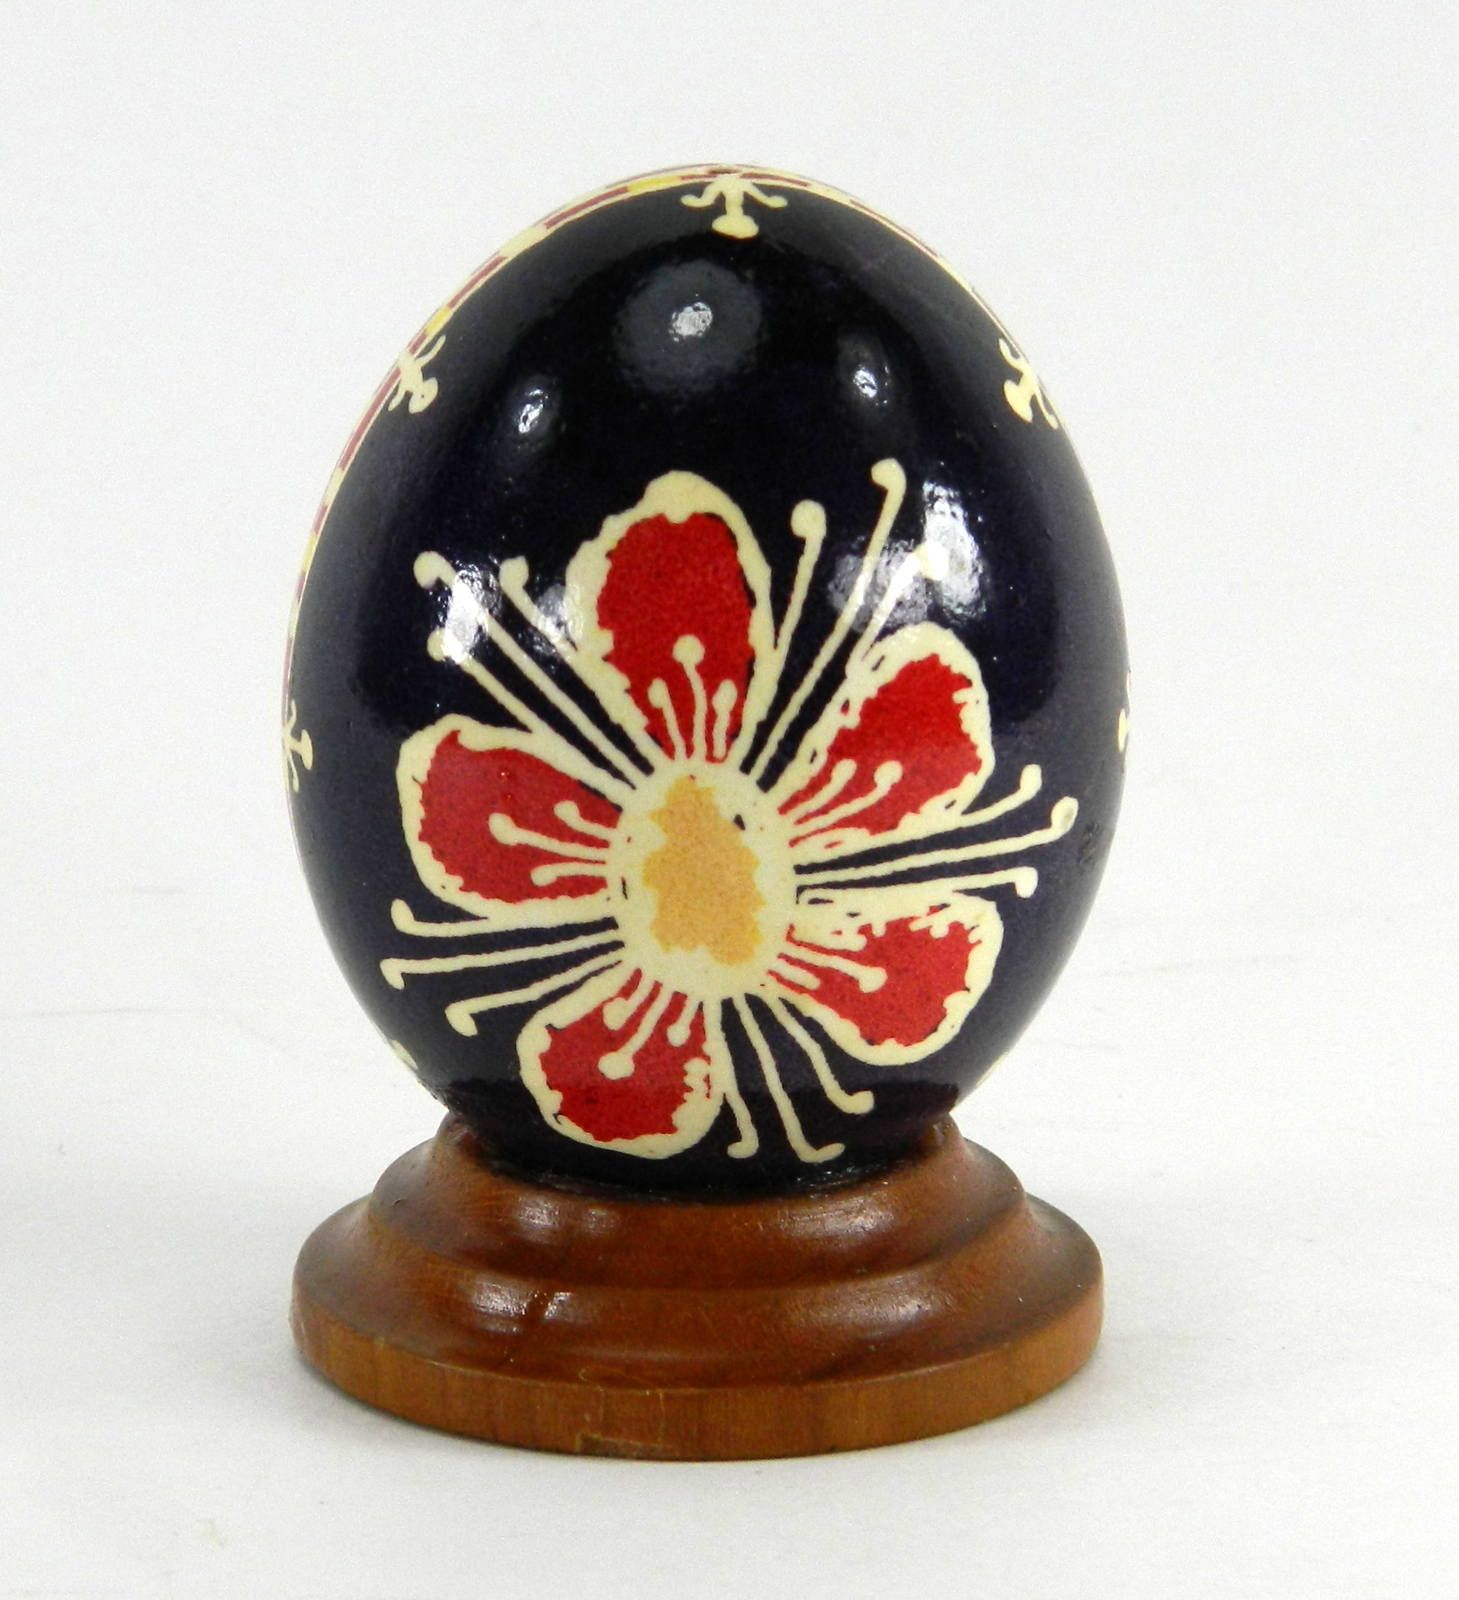 Polish Pysanky Egg Hand Painted Decorated Vintage Easter Blown Out Chicken Egg 20715 by JacksonsMarket on Etsy